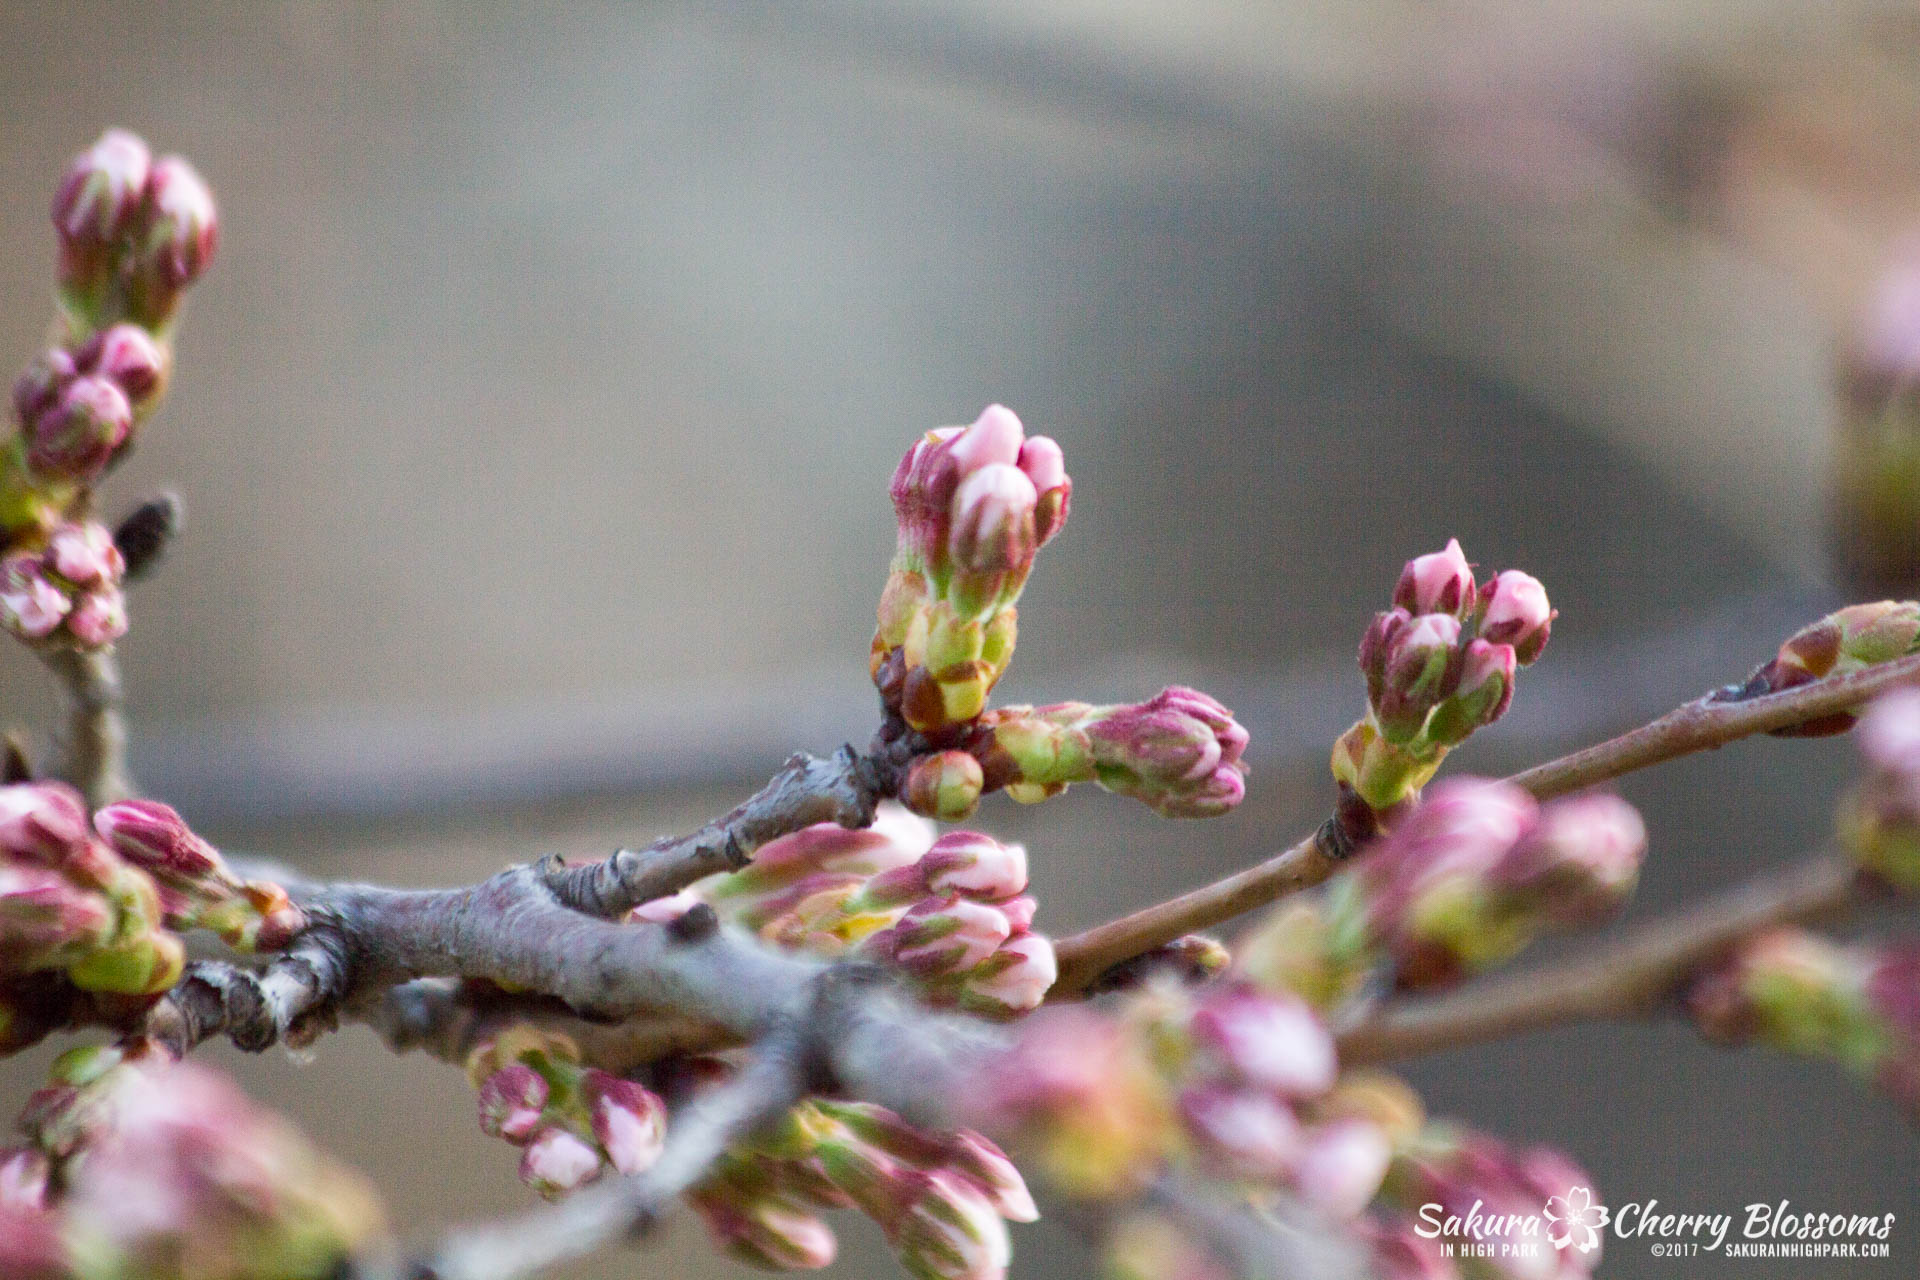 Sakura-in-High-Park-April-17-2017-florets-are-emerging-from-the-buds-throughout-the-park-20.jpg